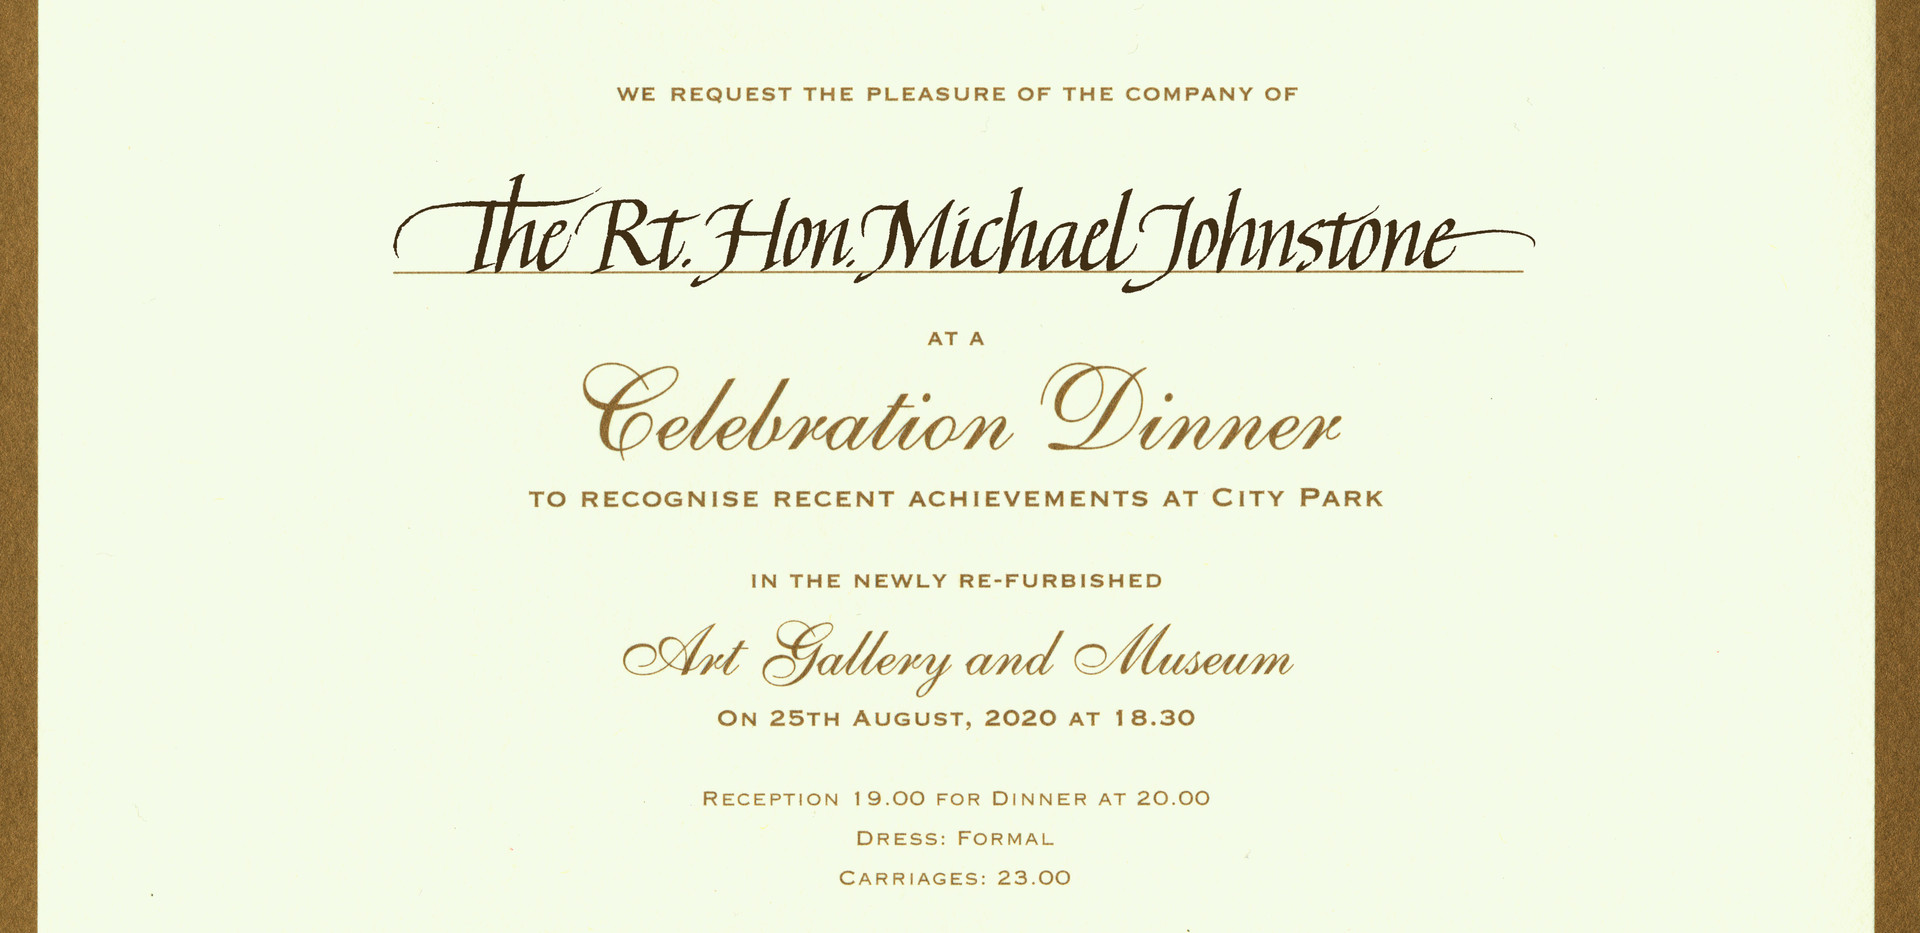 Inscribed invitation